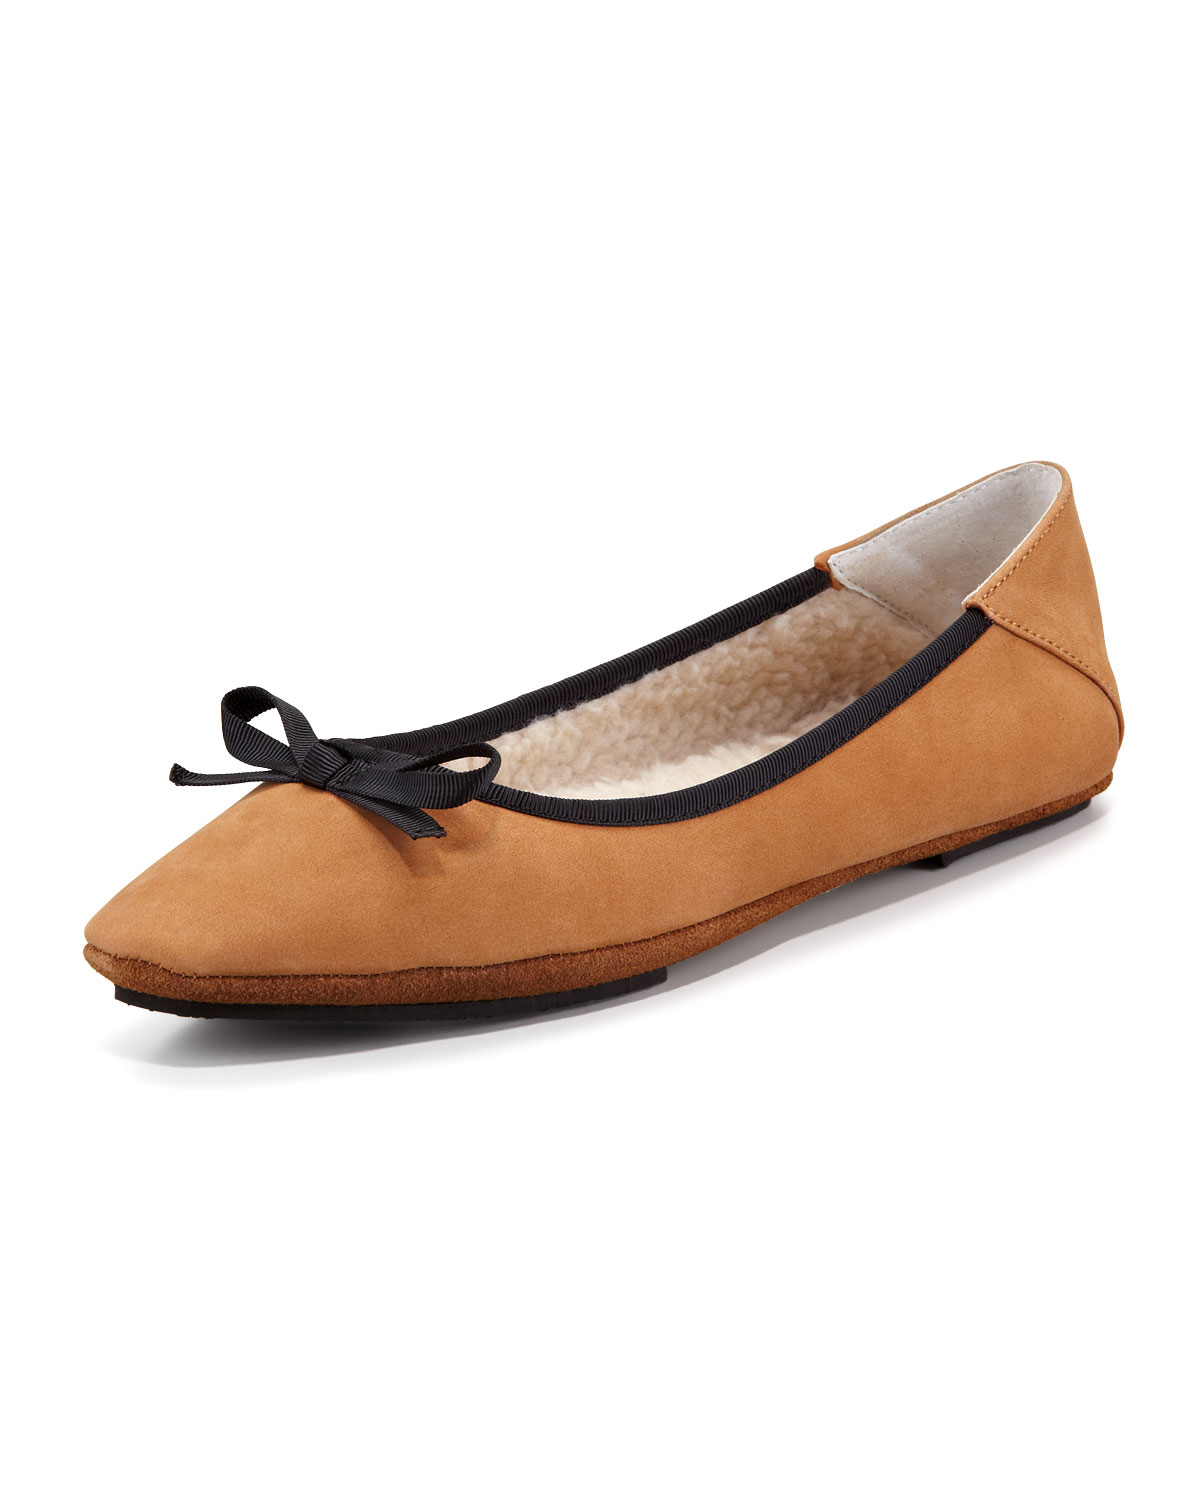 e82d60c6a Lyst - Jacques Levine Inslee Bow Faux-shearling Slipper in Black